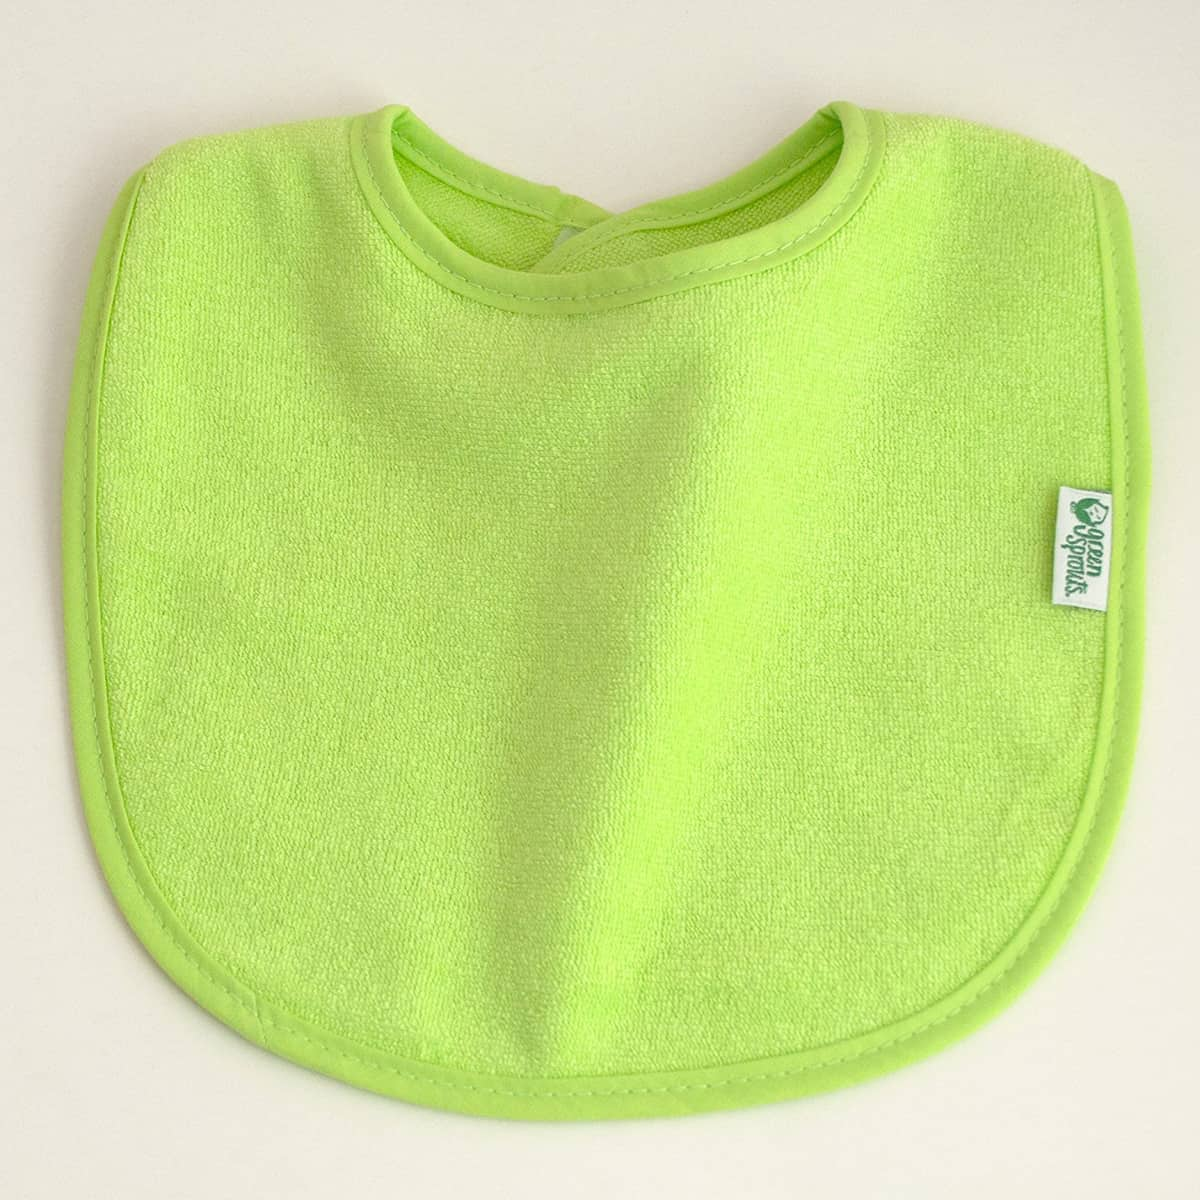 The Best Baby Bibs, According to Moms of Super-Messy Kids: gallery image 5